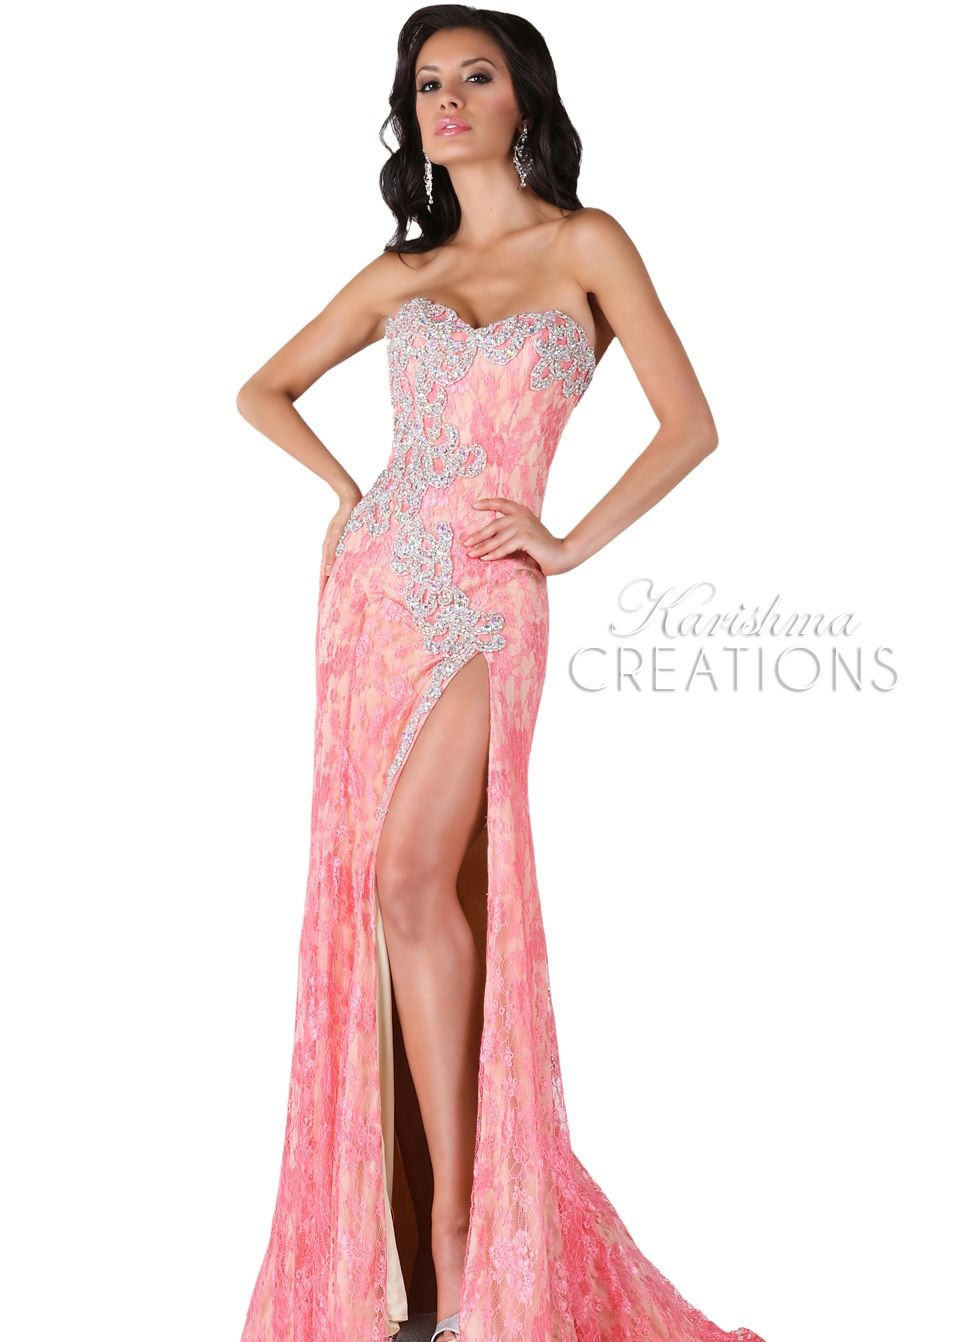 Karishma 3704 - Nude/Pink Strapless Beaded Lace Prom Dresses Online ...